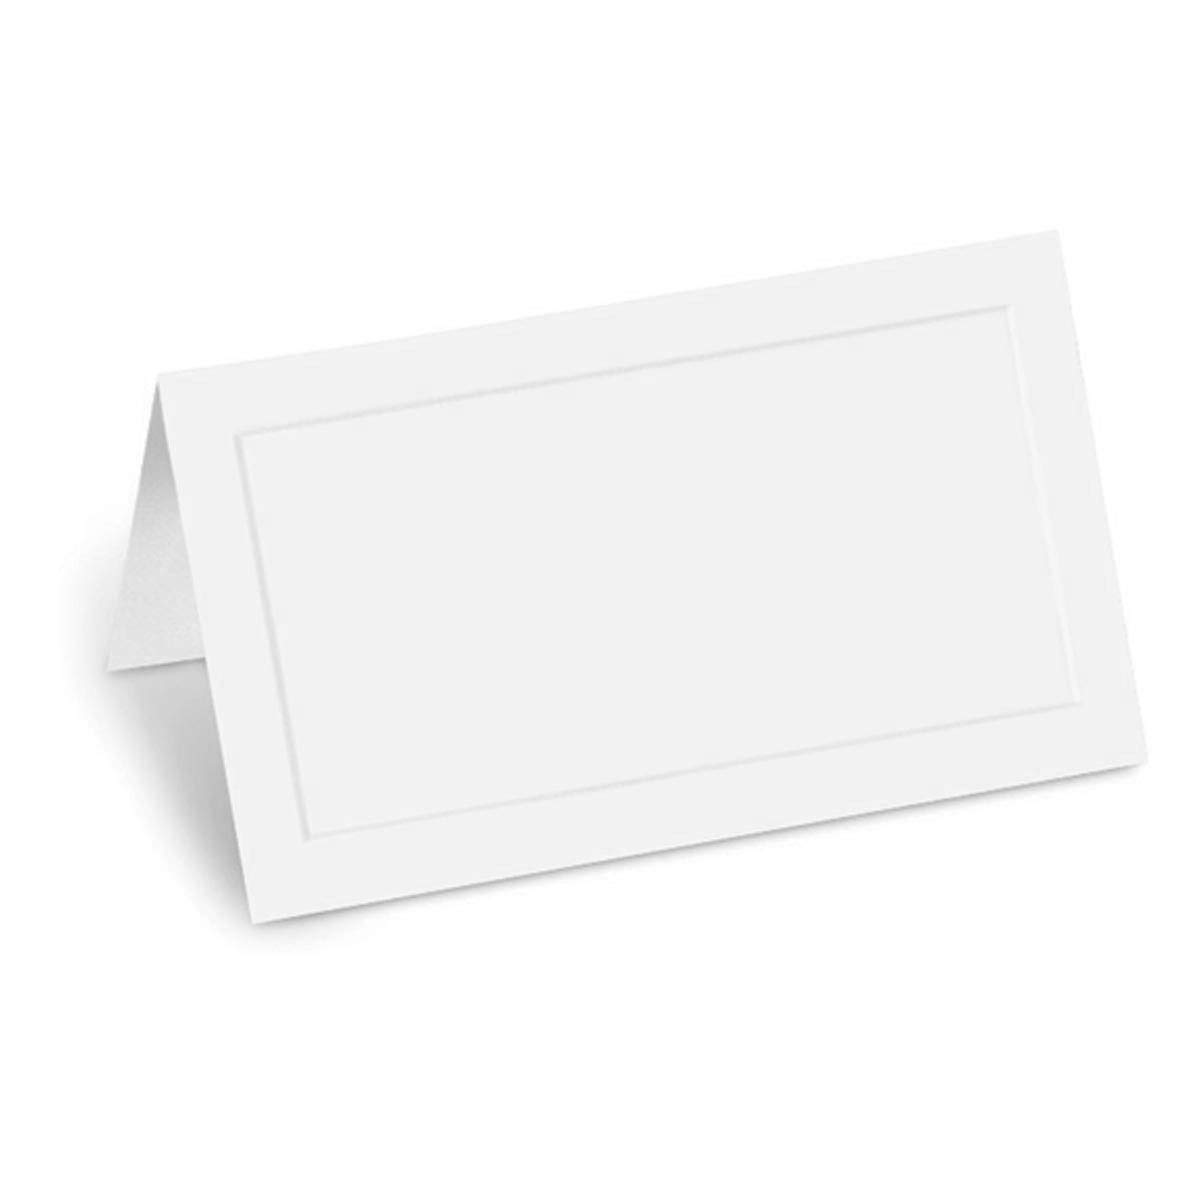 PaperDirect White Dignity Embossed 38lb Cover Stock Folded Place Cards, Micro-Perforated, 2'' x 3 1/2'', 100/pack, Laser and Inkjet Compatible by PaperDirect